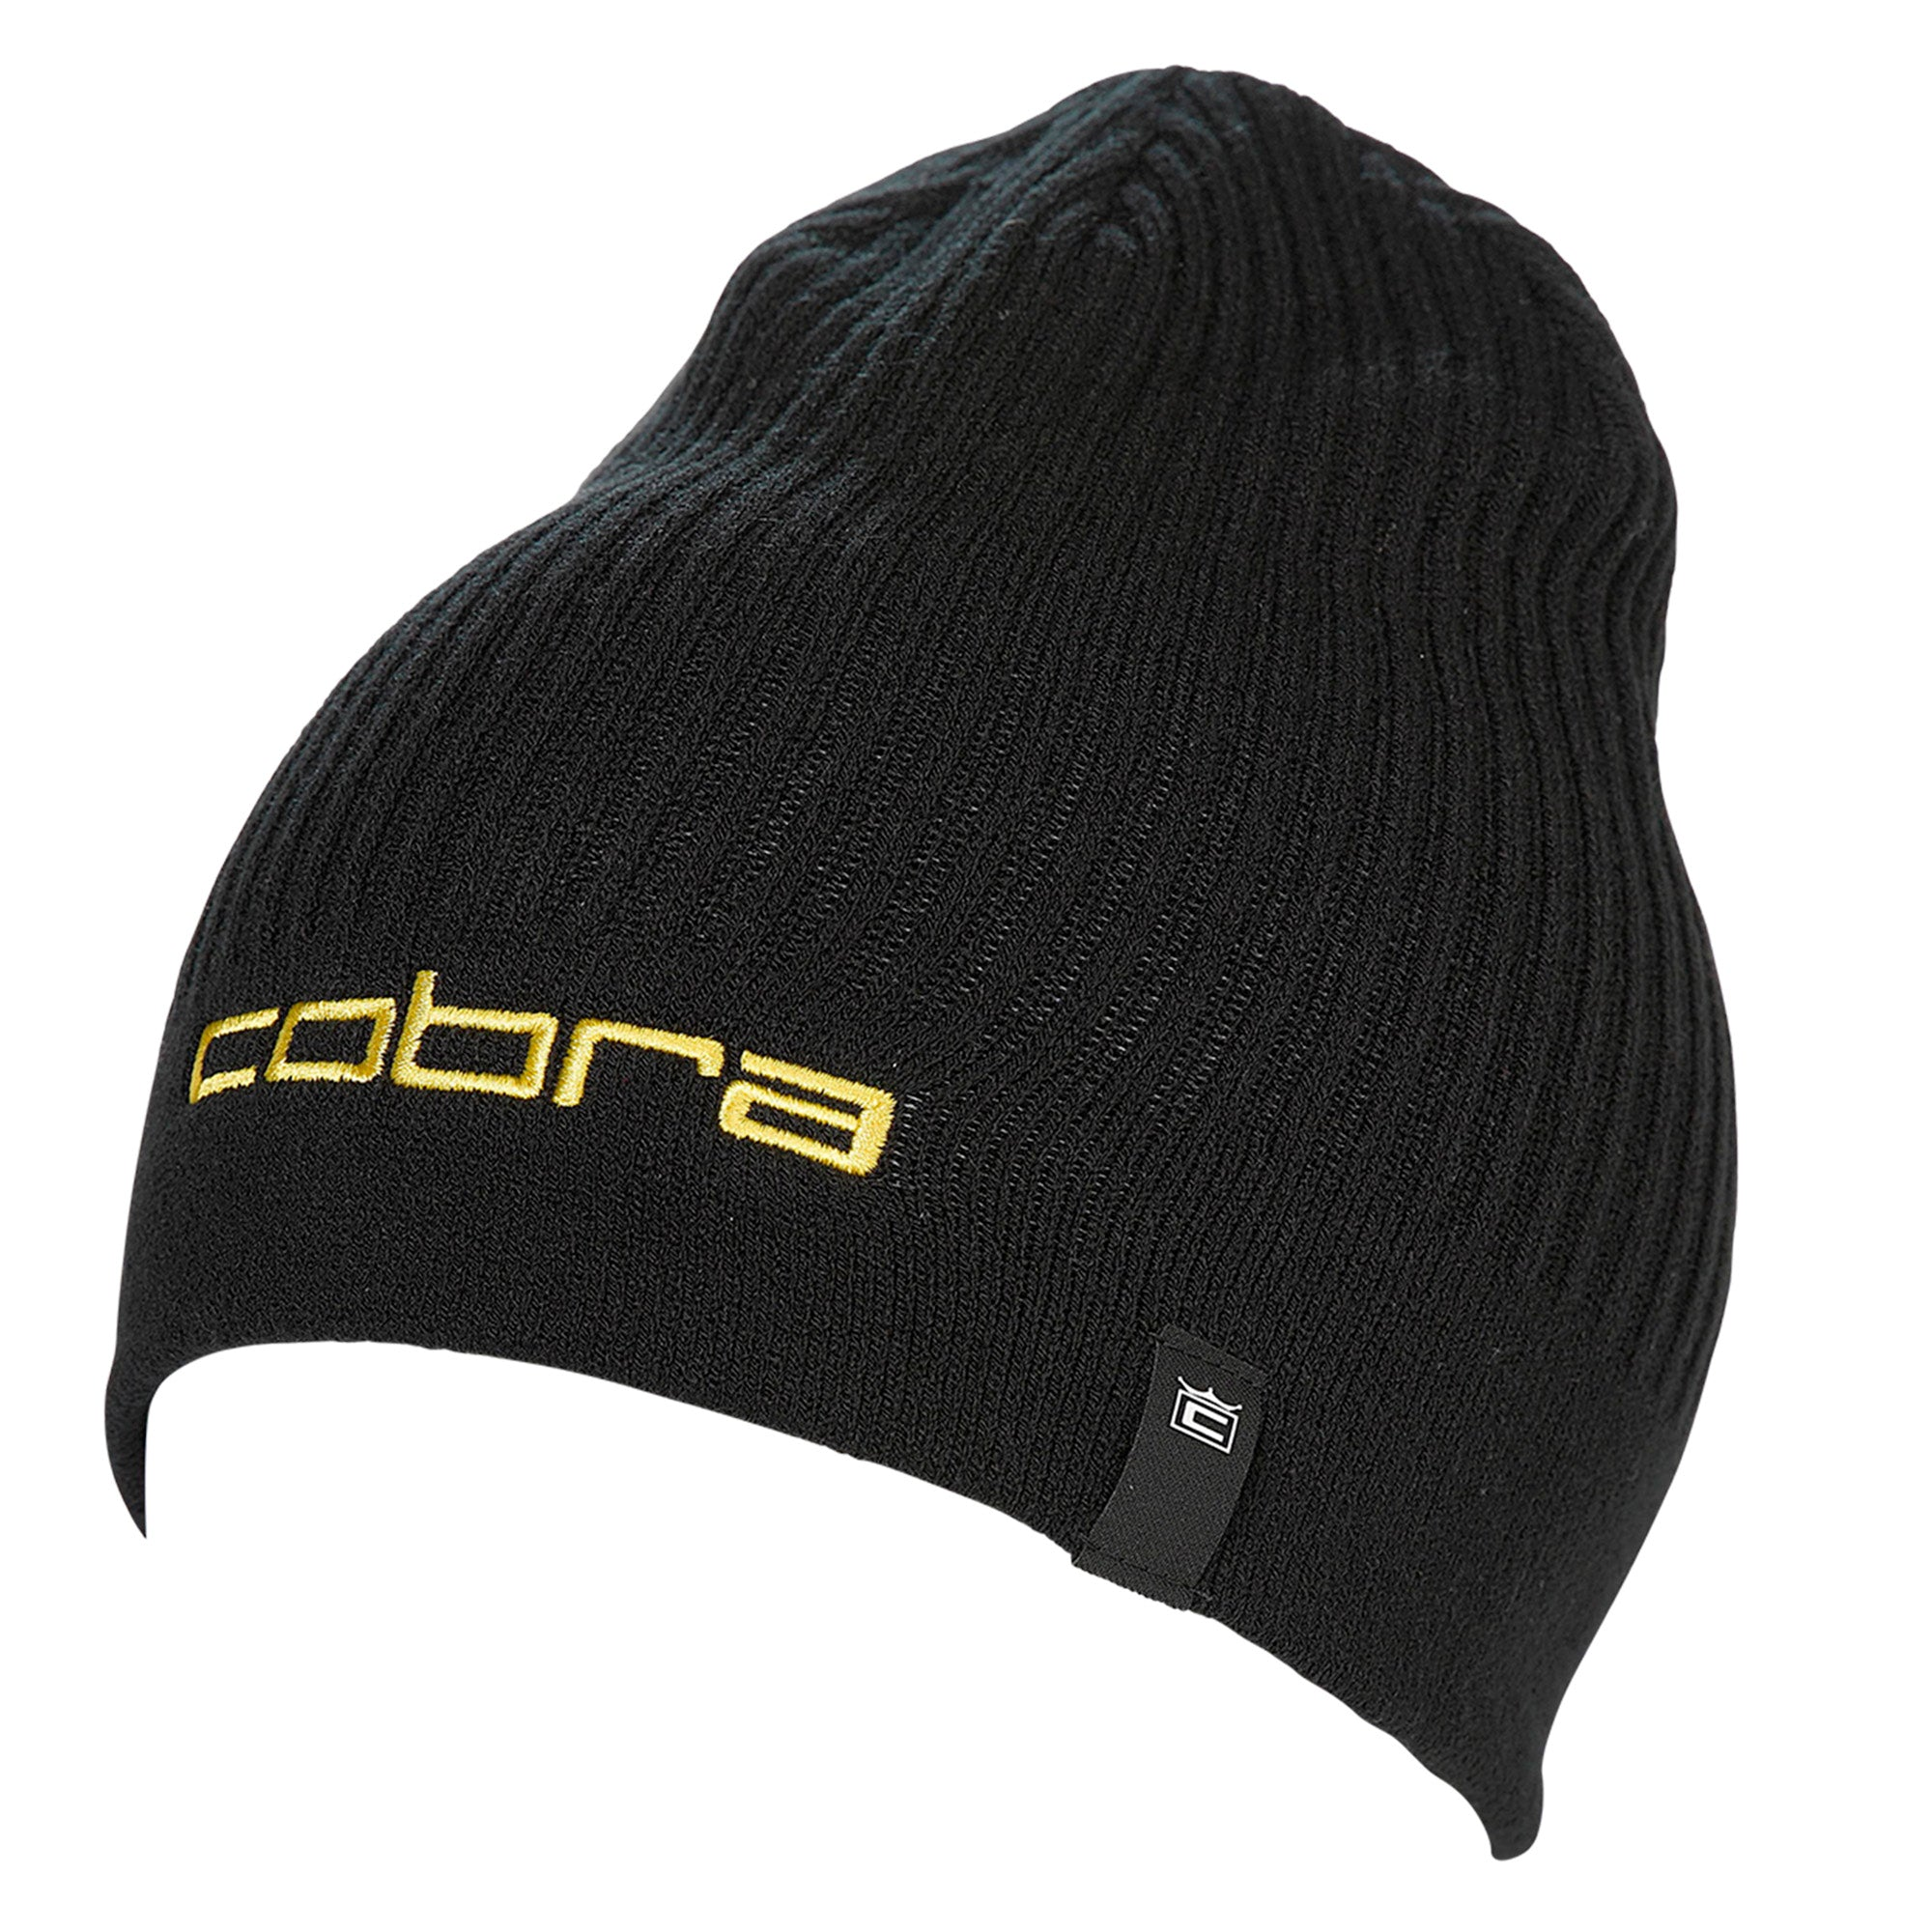 Cobra Golf Reversible Beanie Hat 909307